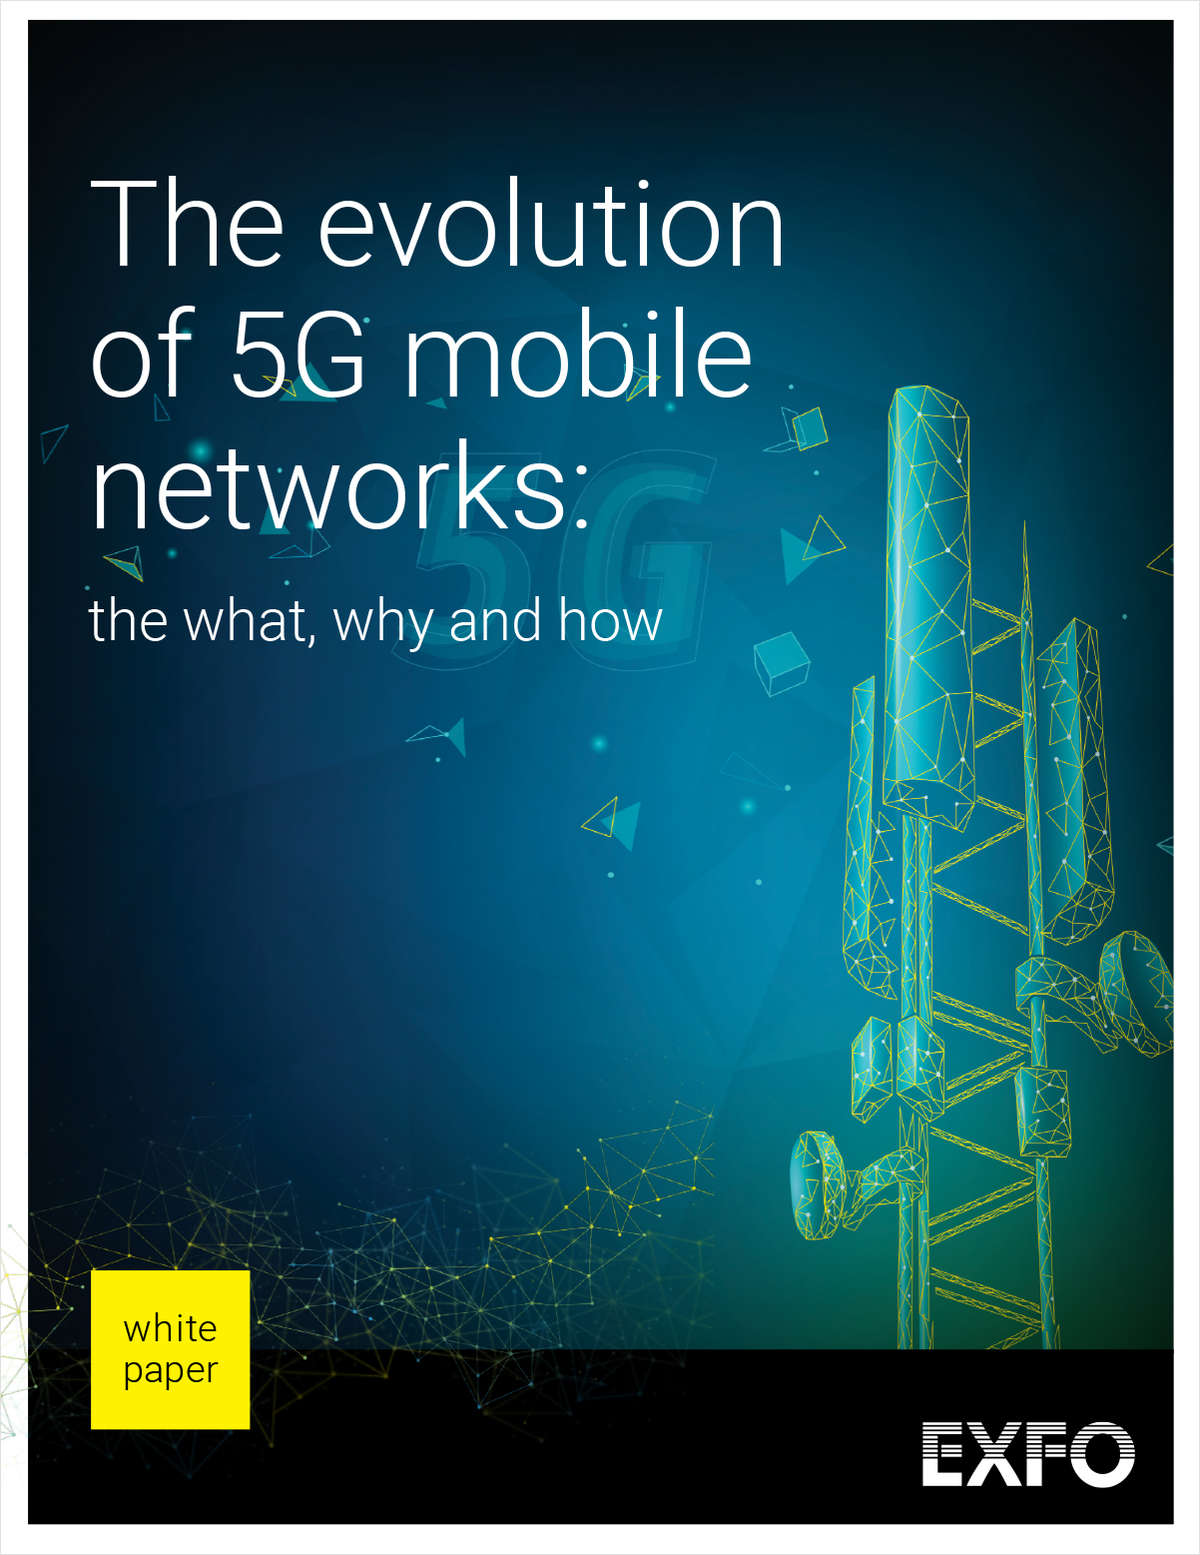 The evolution of 5G mobile networks: the what, why and how